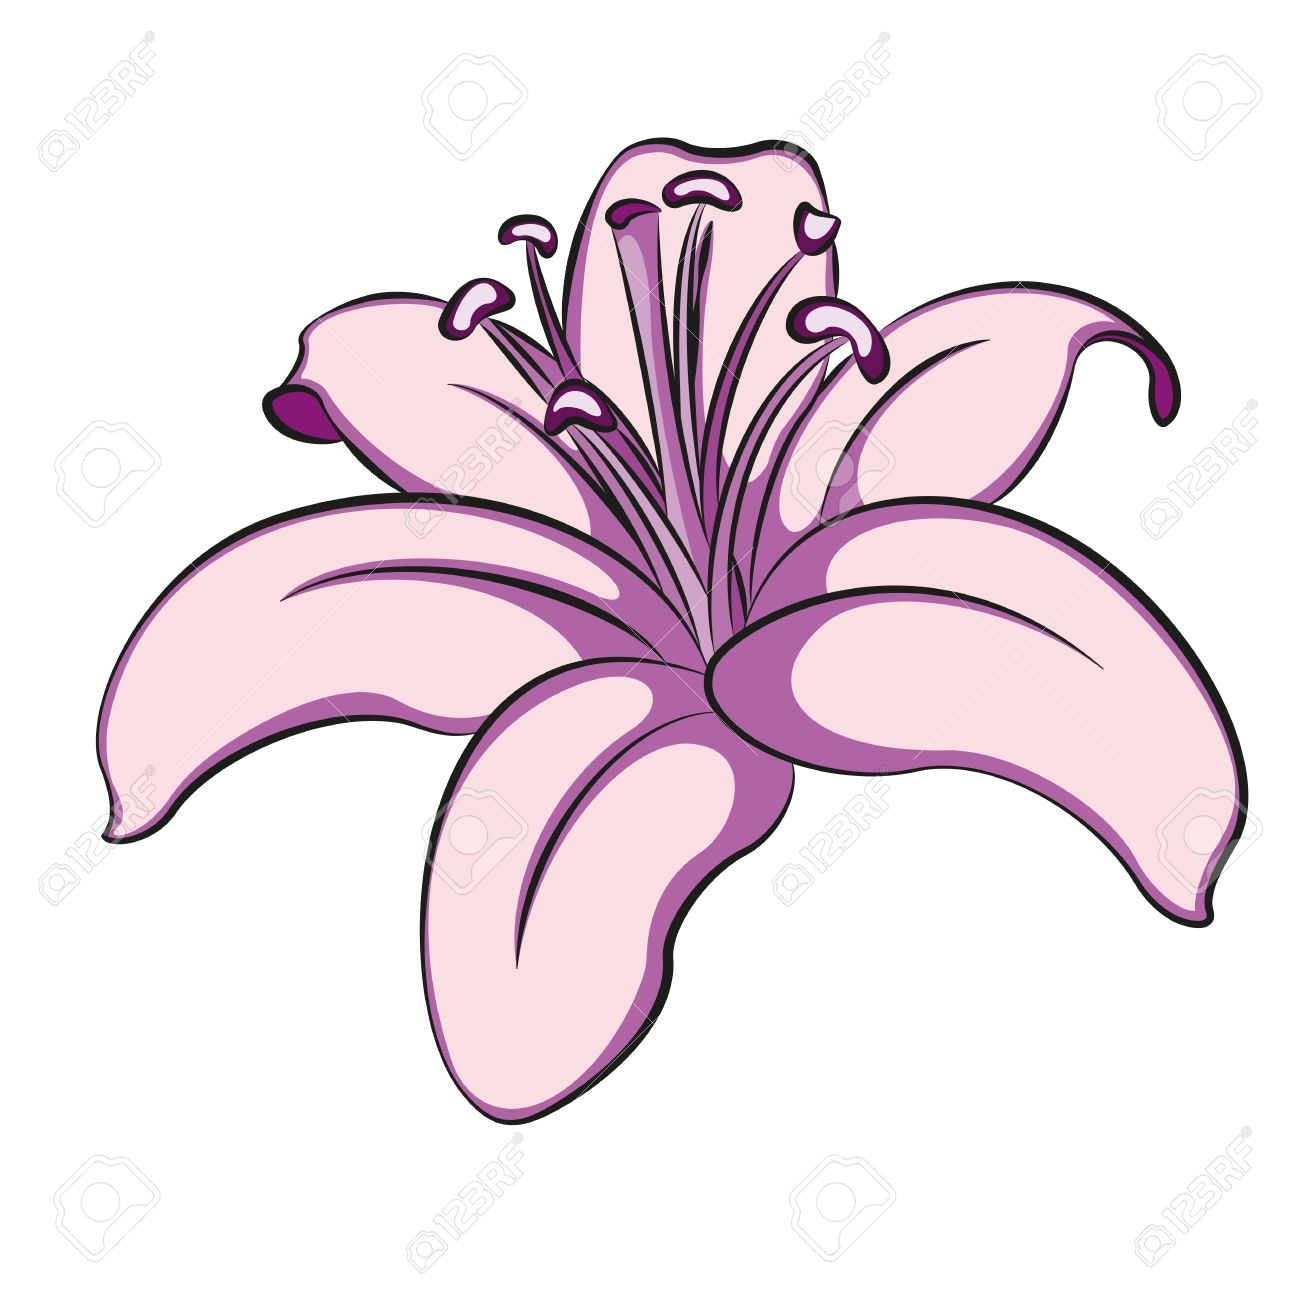 stargazer lily clipart at getdrawings com free for personal use rh getdrawings com water lily clipart lily clip art border